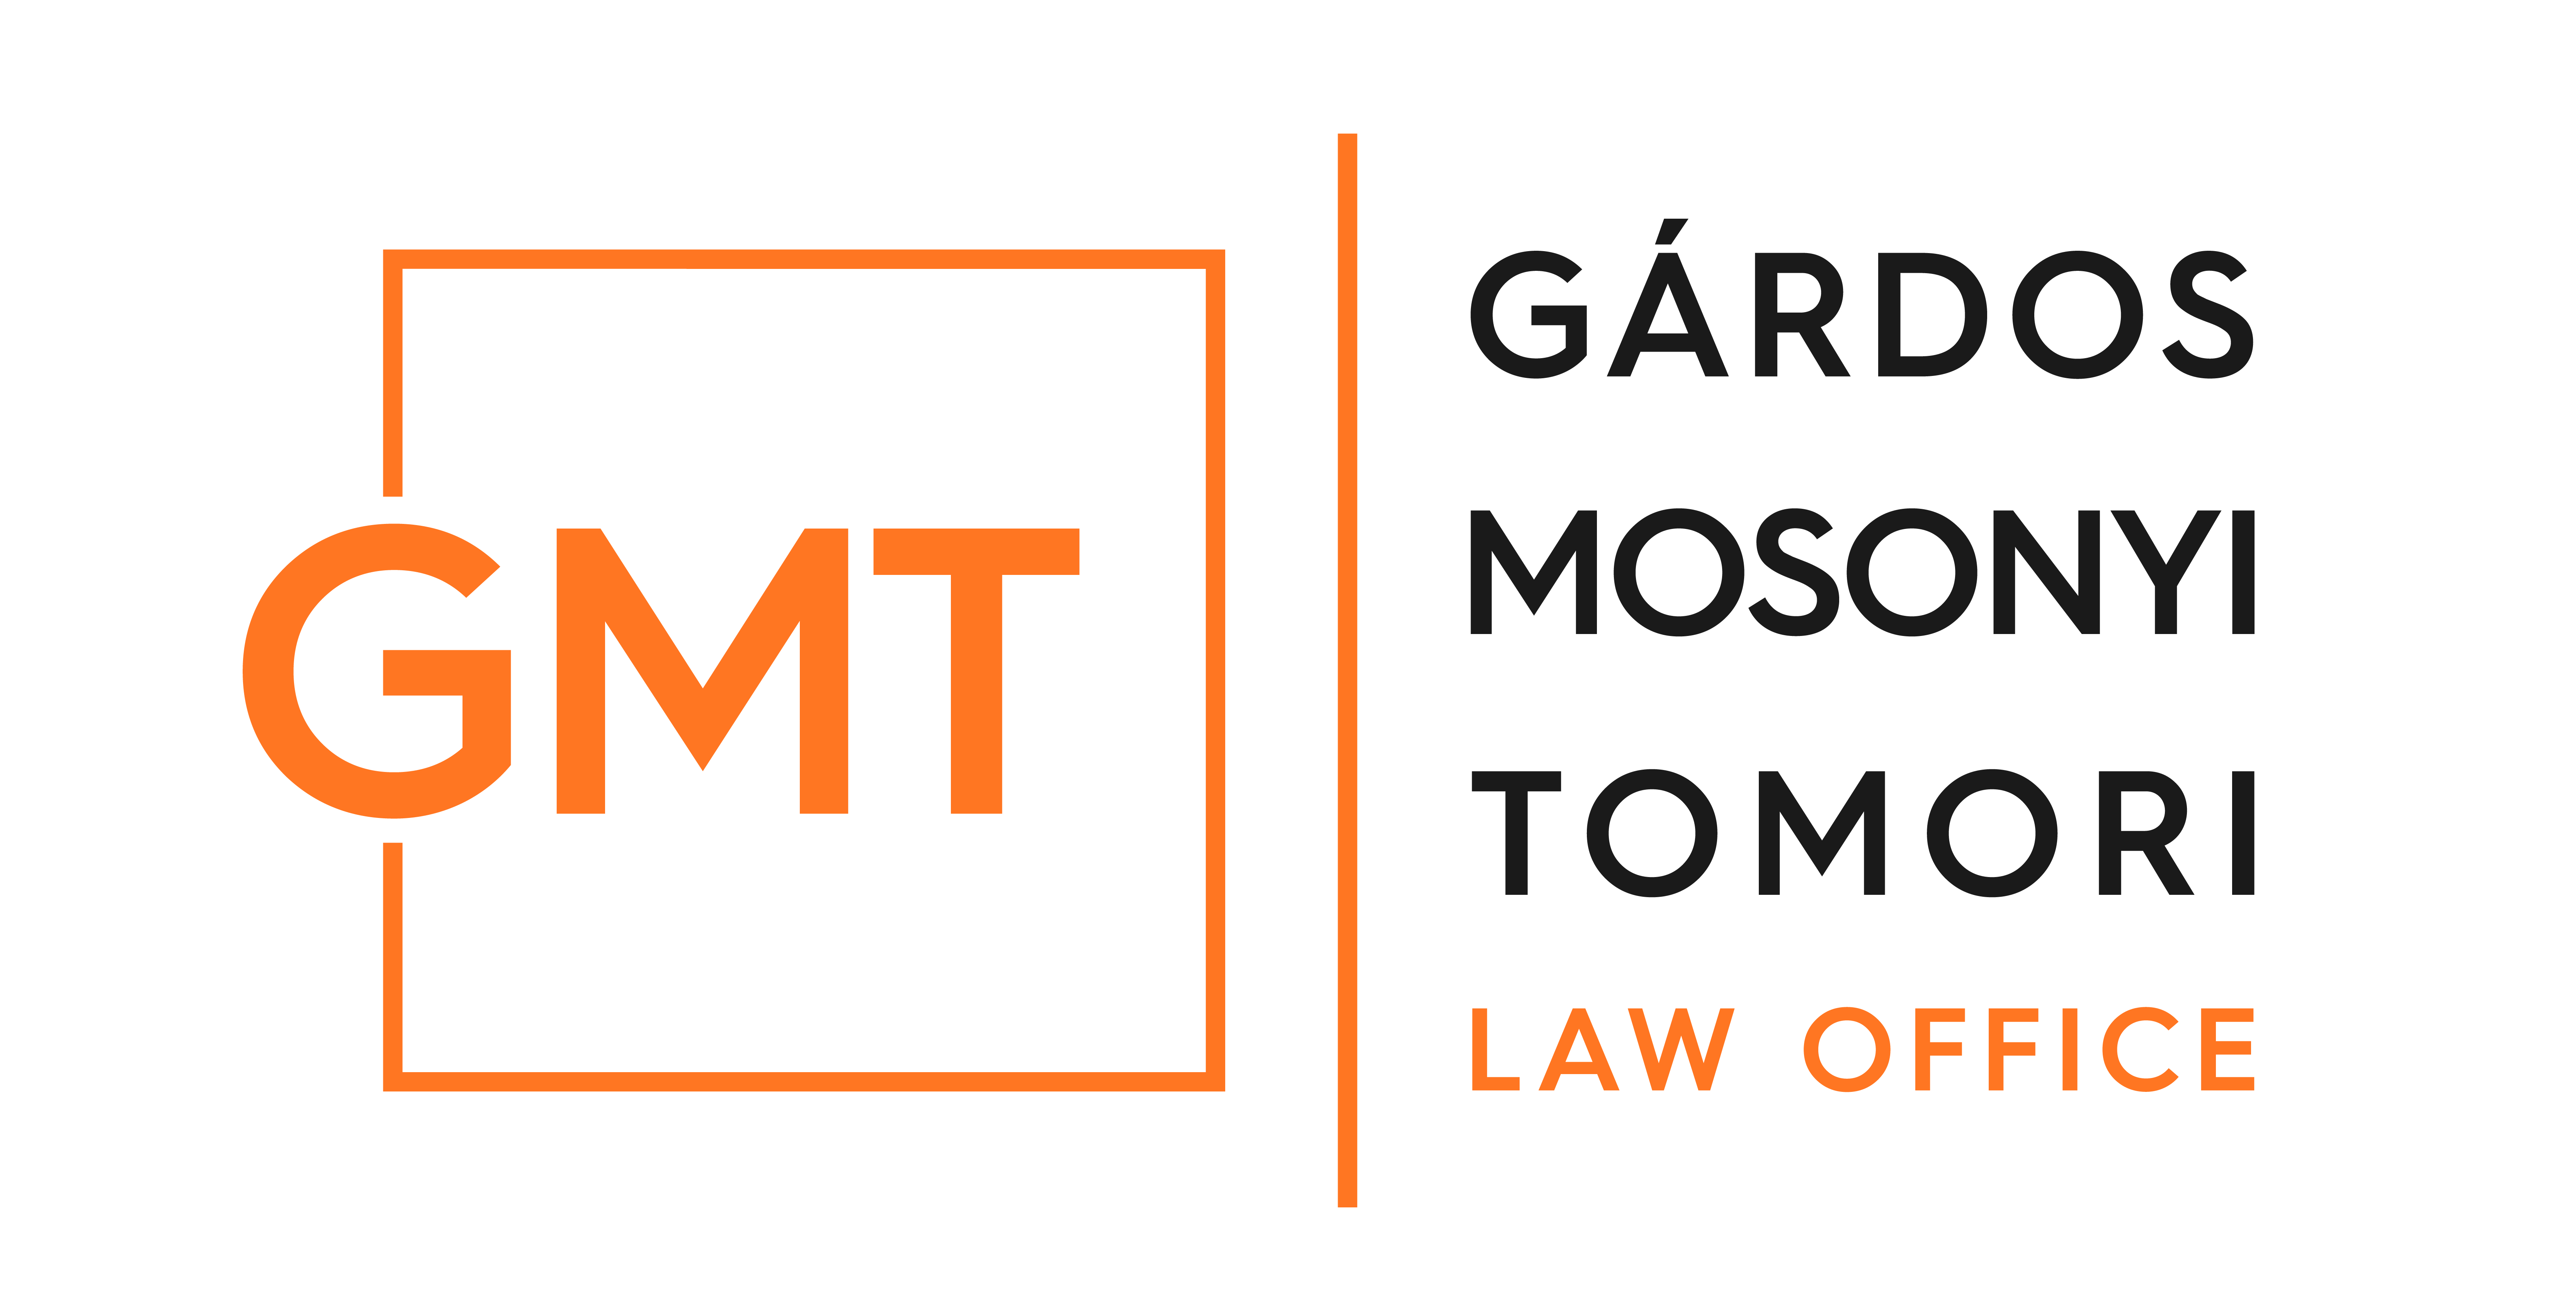 Gárdos Mosonyi Tomori Law Office